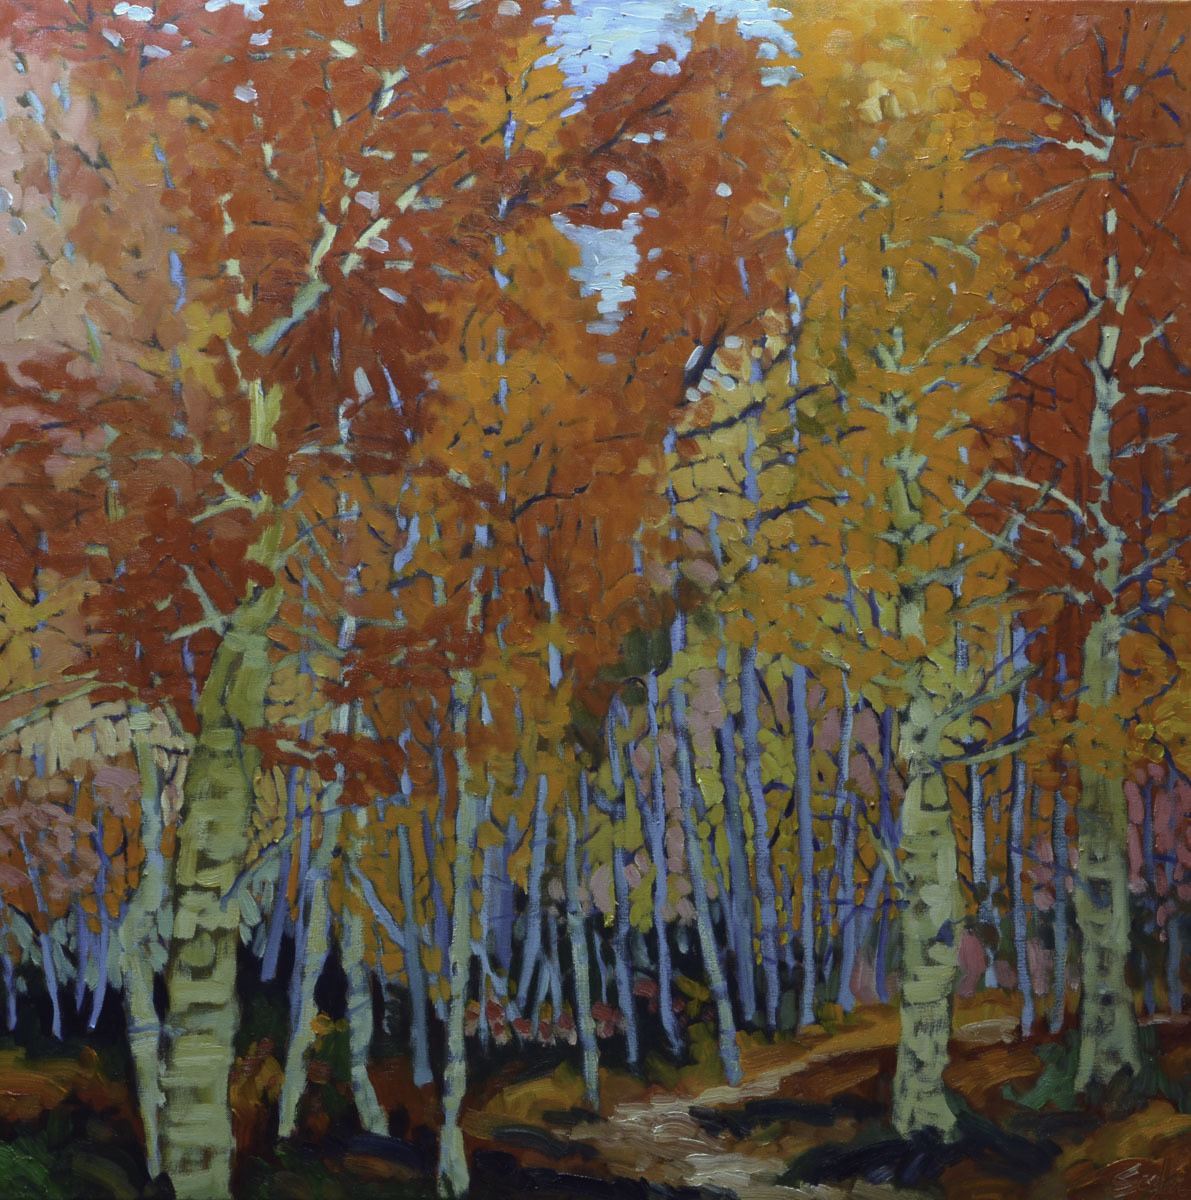 Path Through the Forest, 36x36, 2018 SOLD